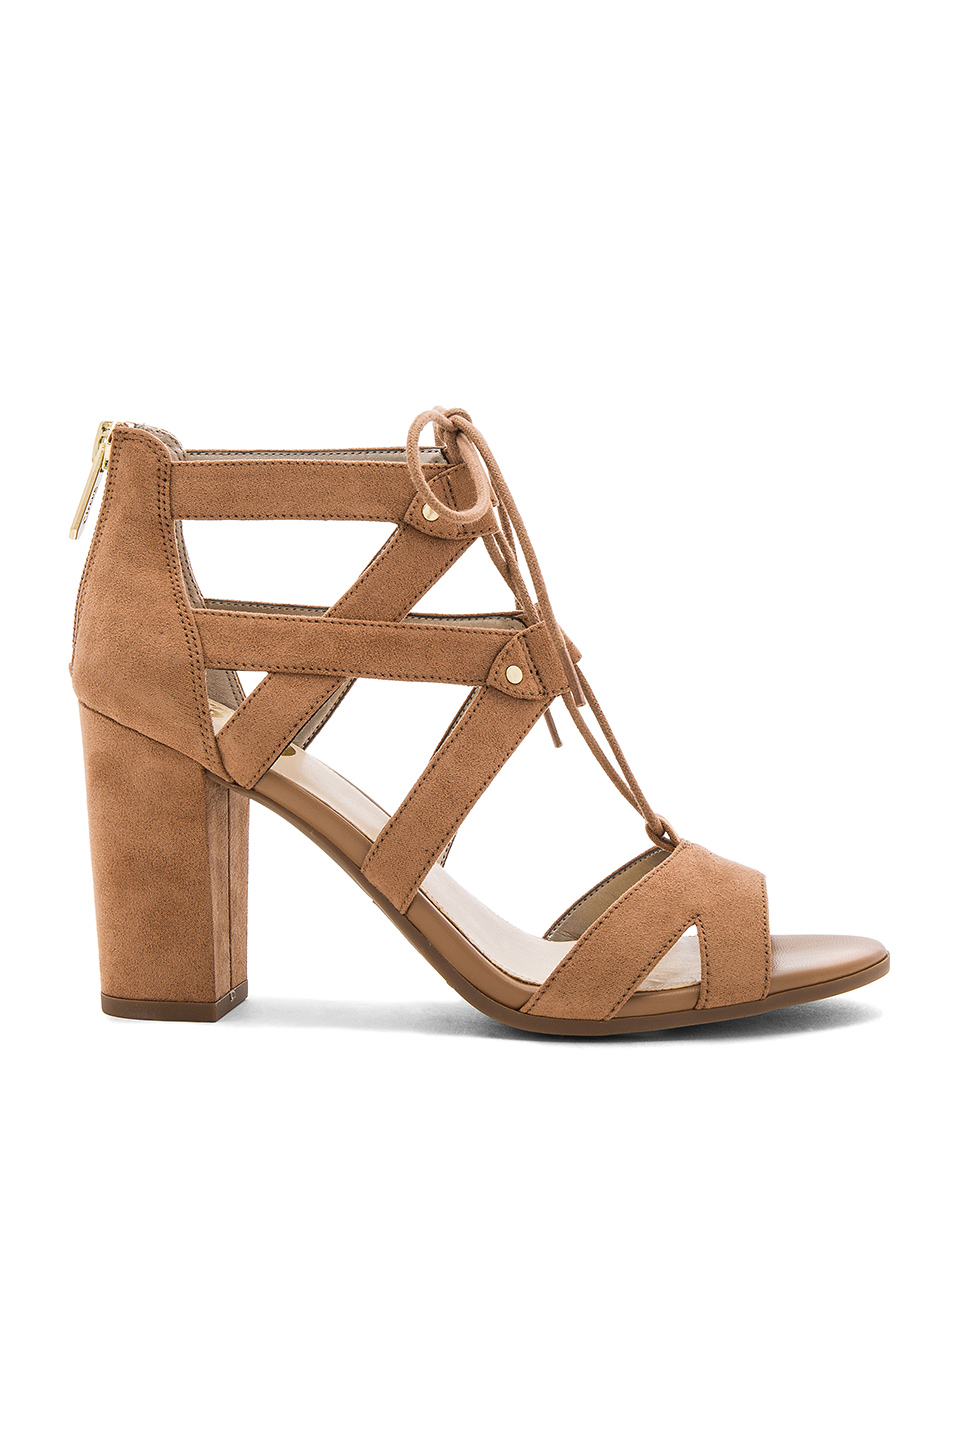 Circus by Sam Edelman Emilia Heel in Golden Caramel